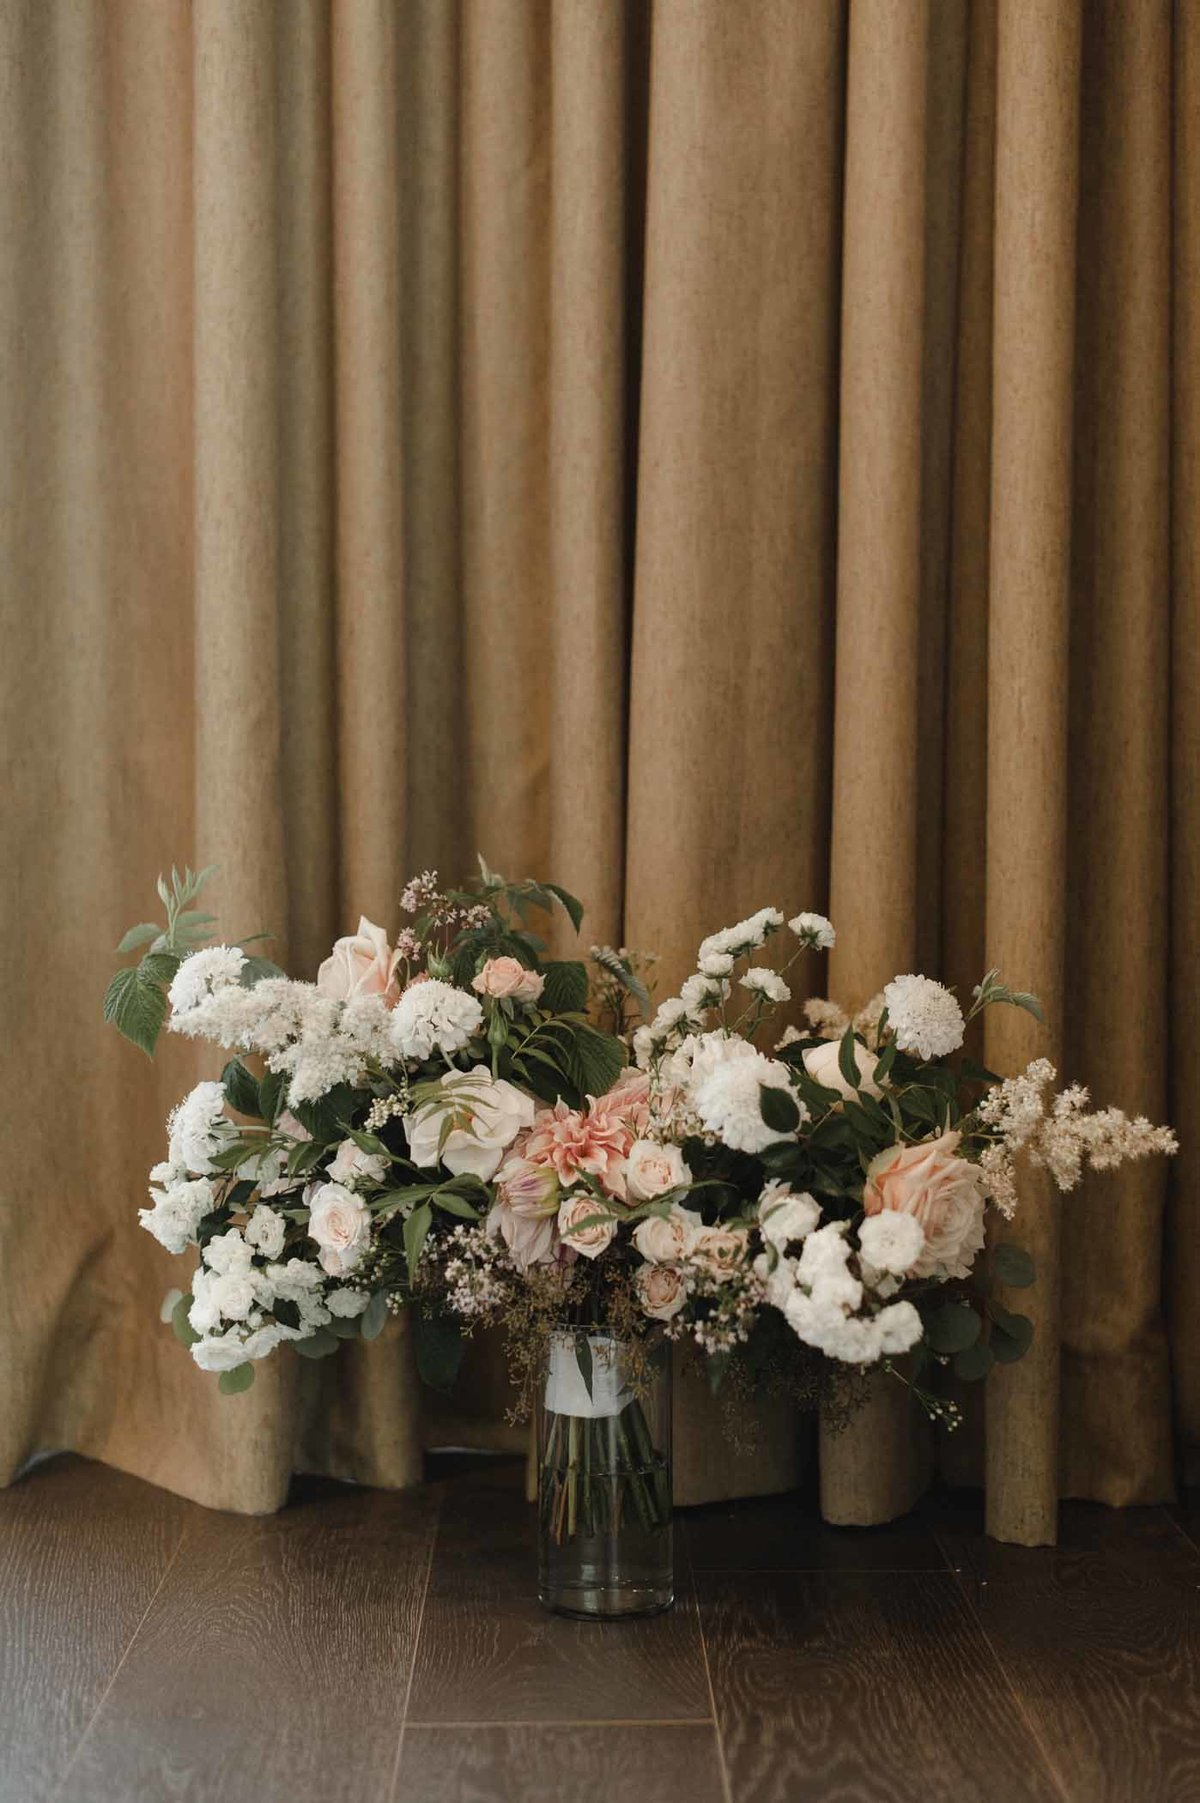 Stunning summer cream and blush  bridal bouquet of Fairy roses, astilbe, roses, and scabiosa.